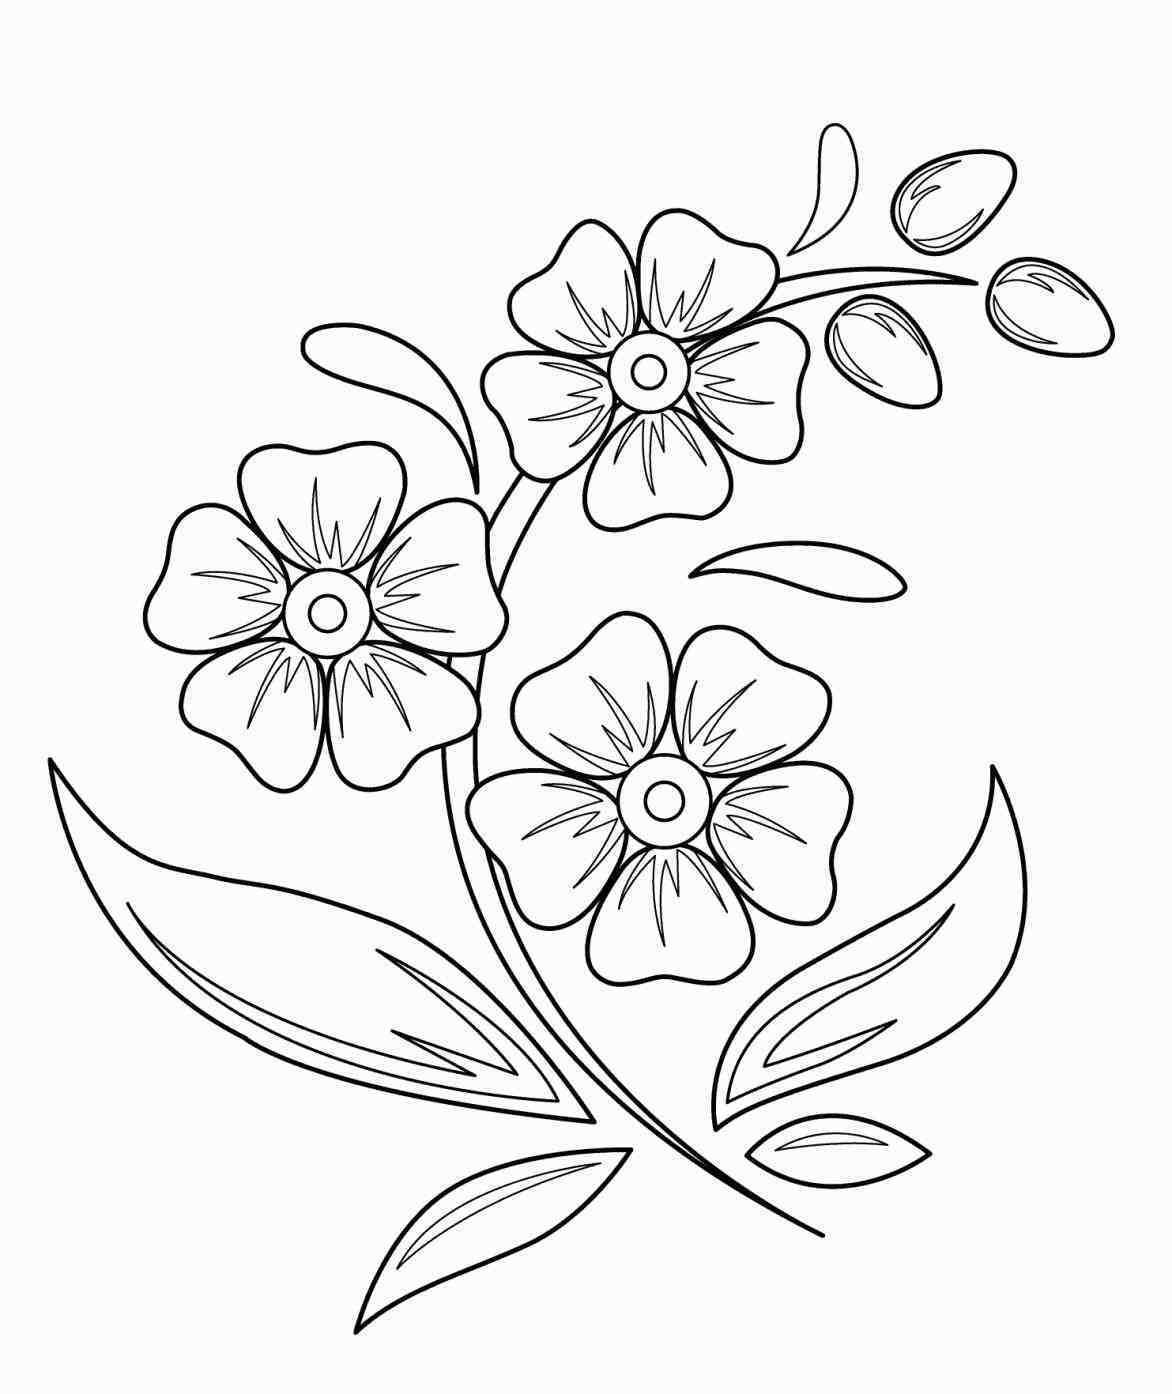 flower drawings for kids | Beautiful flower drawings, Easy ...